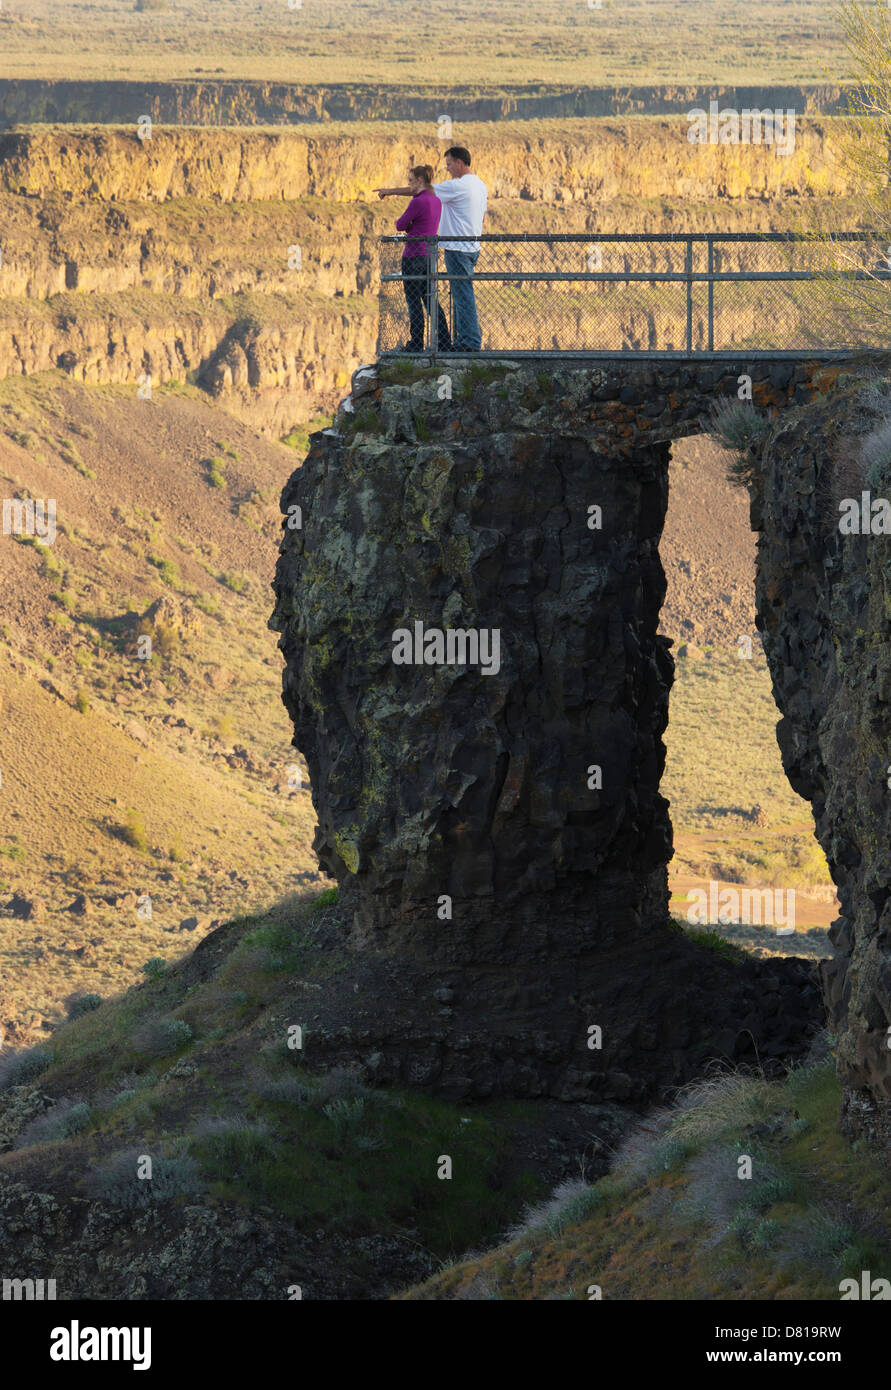 Couple on viewpoint, Dry Falls State Park, Washington State USA - Stock Image